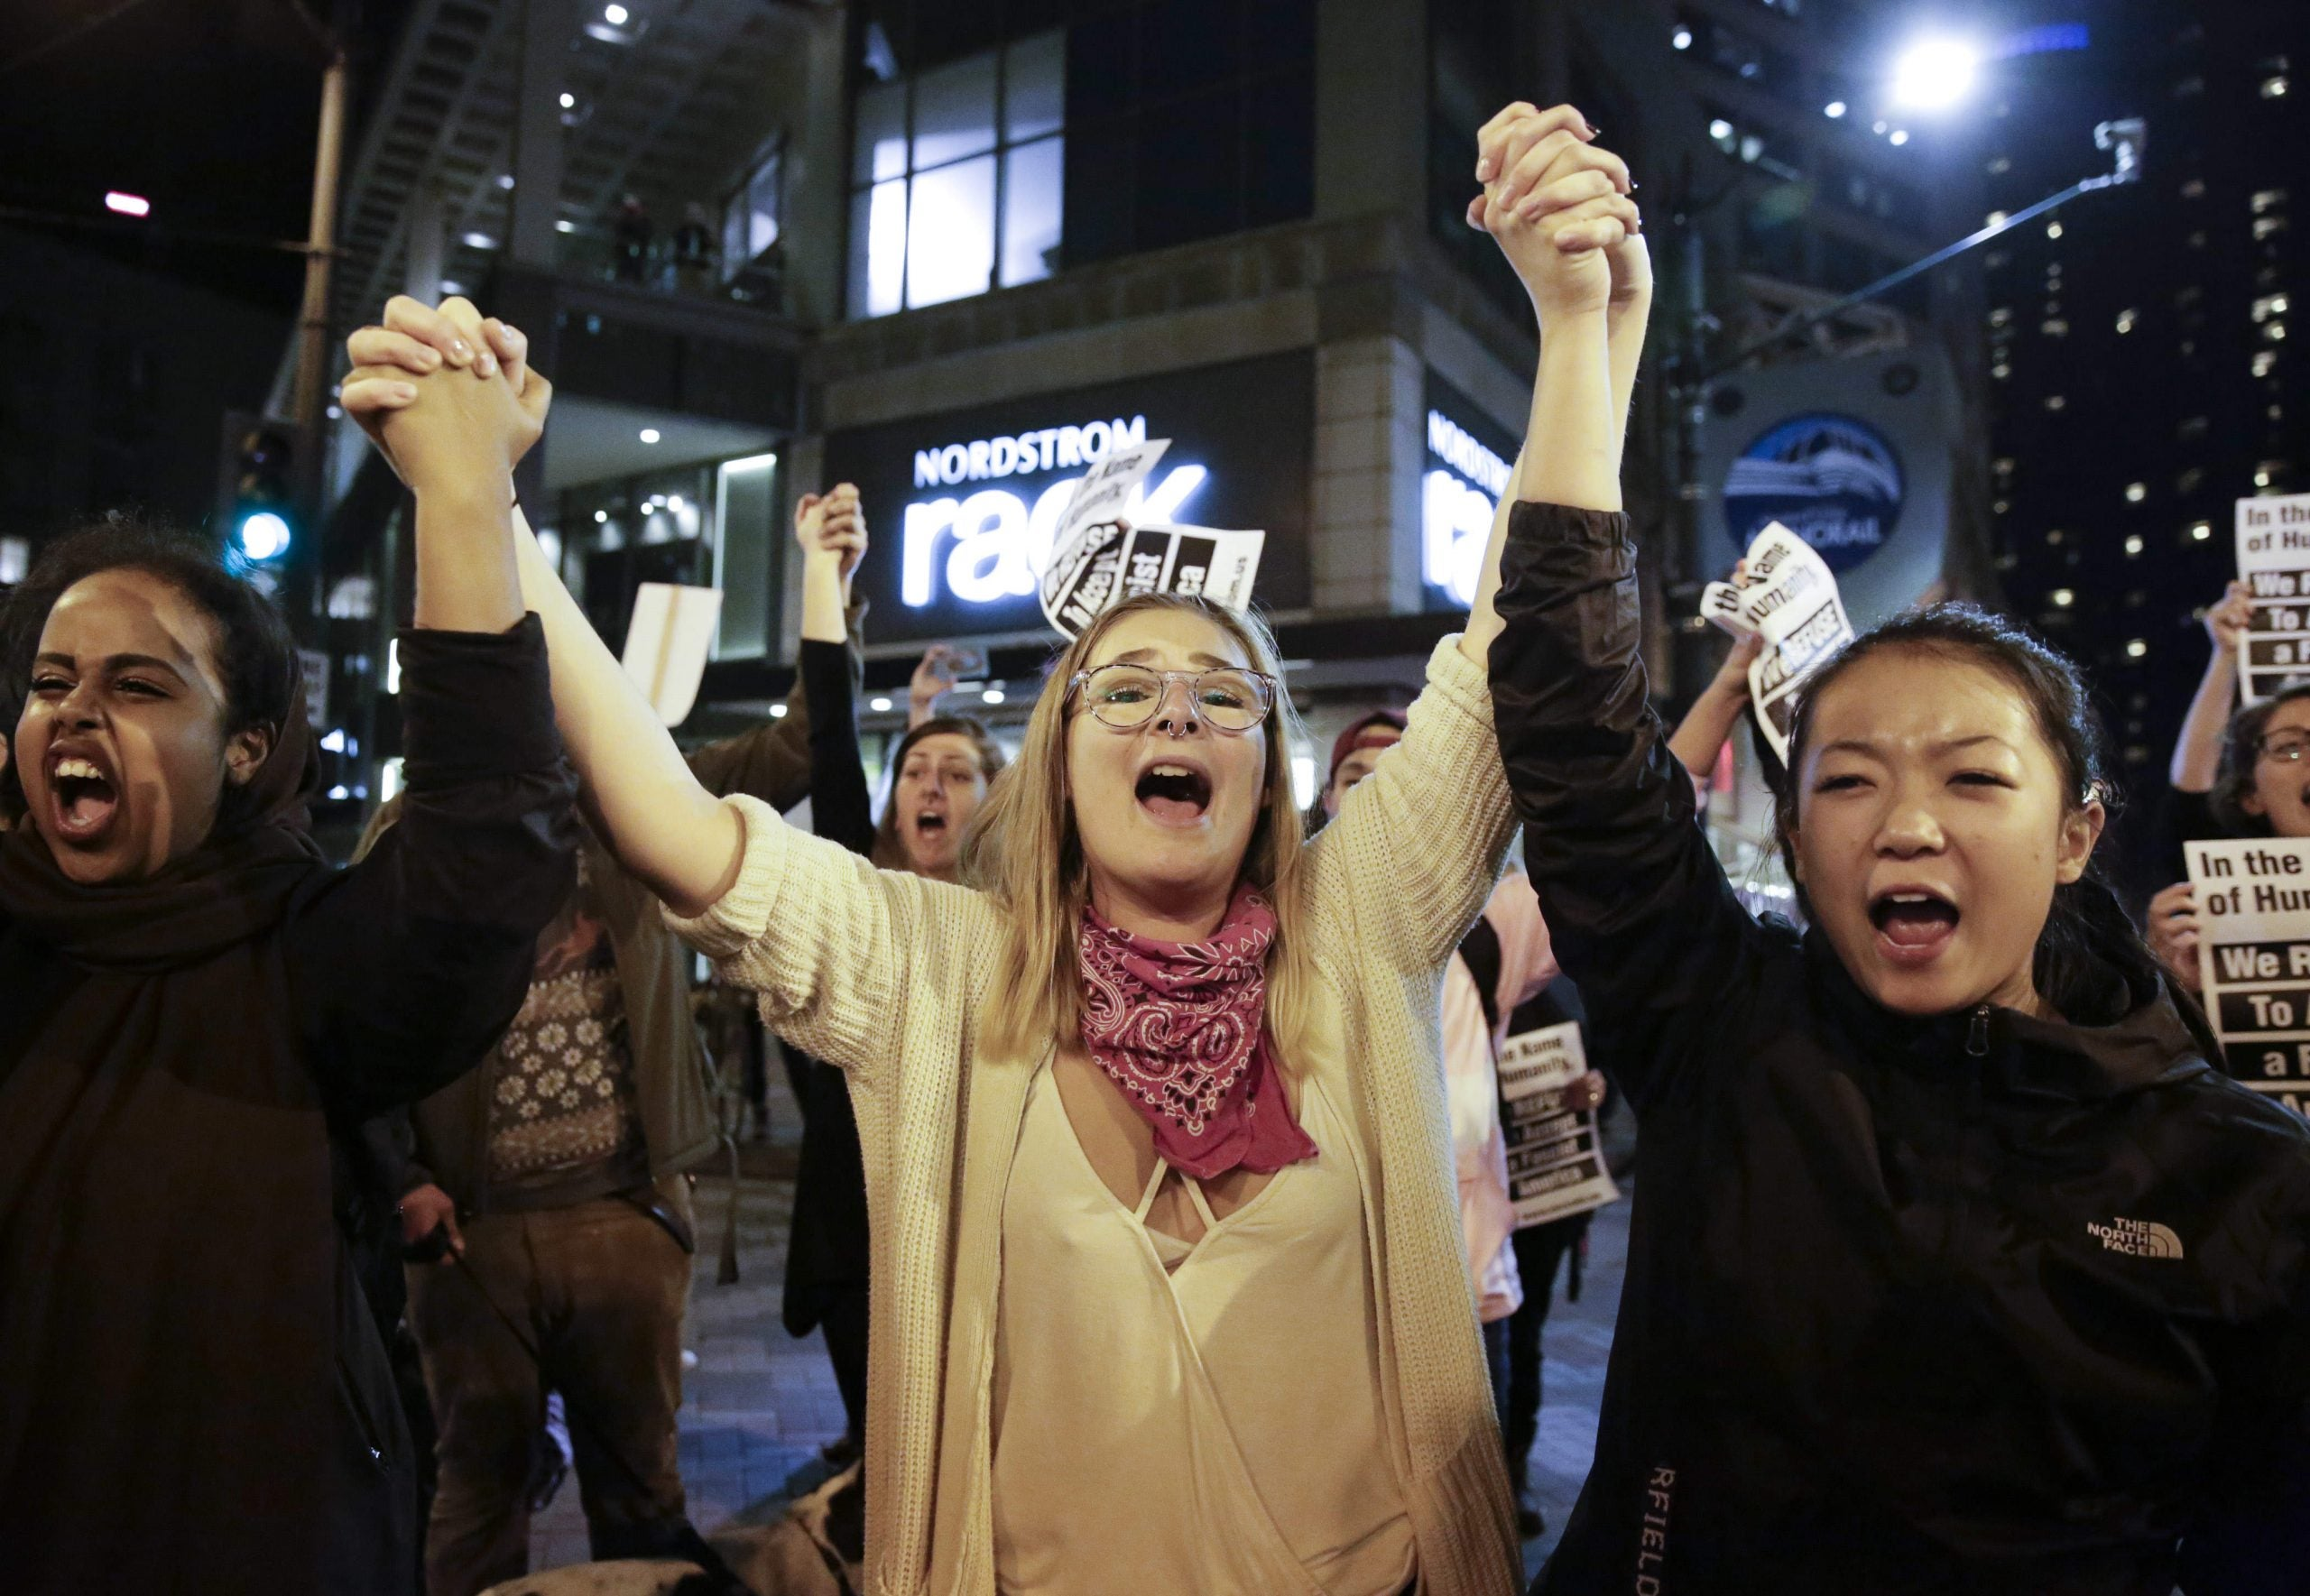 The Women's March against Trump matters – but only if we keep fighting